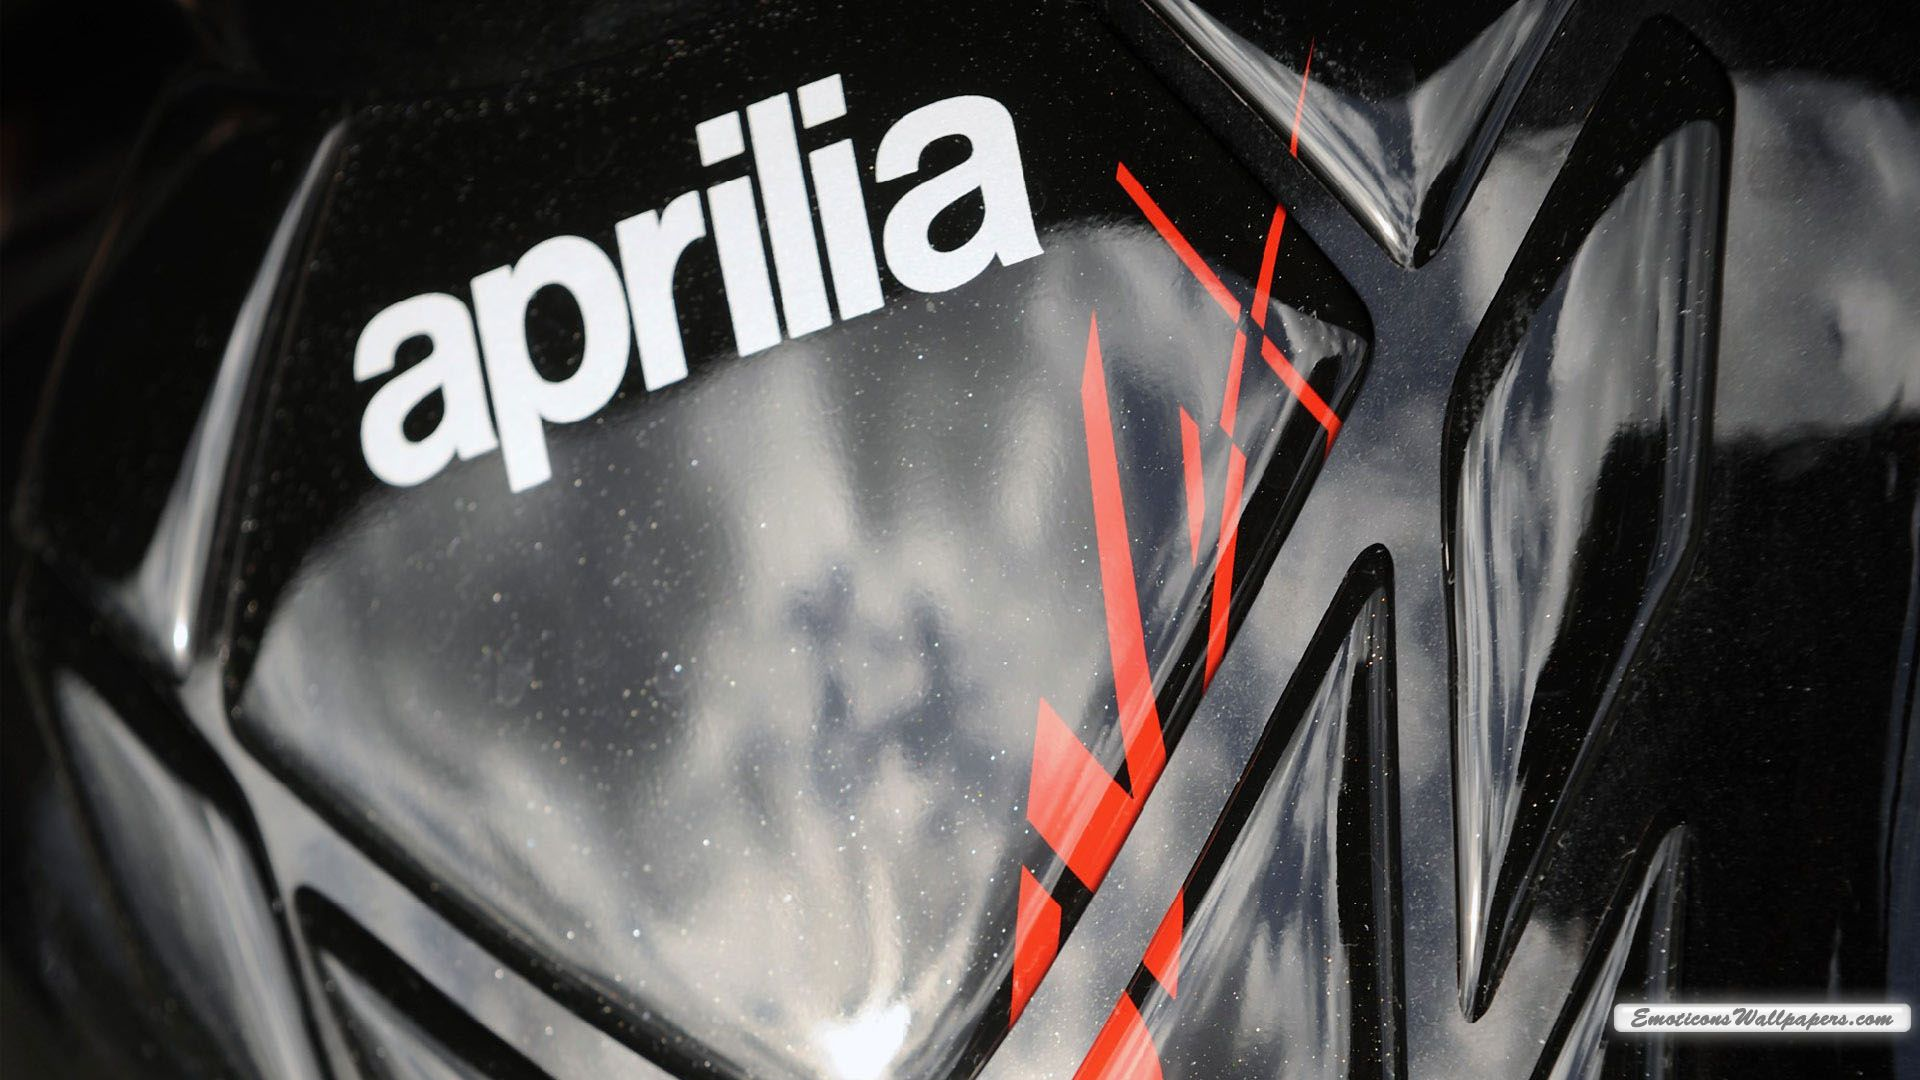 Aprilia Wallpapers 4K 1920x1080   4USkY 1920x1080